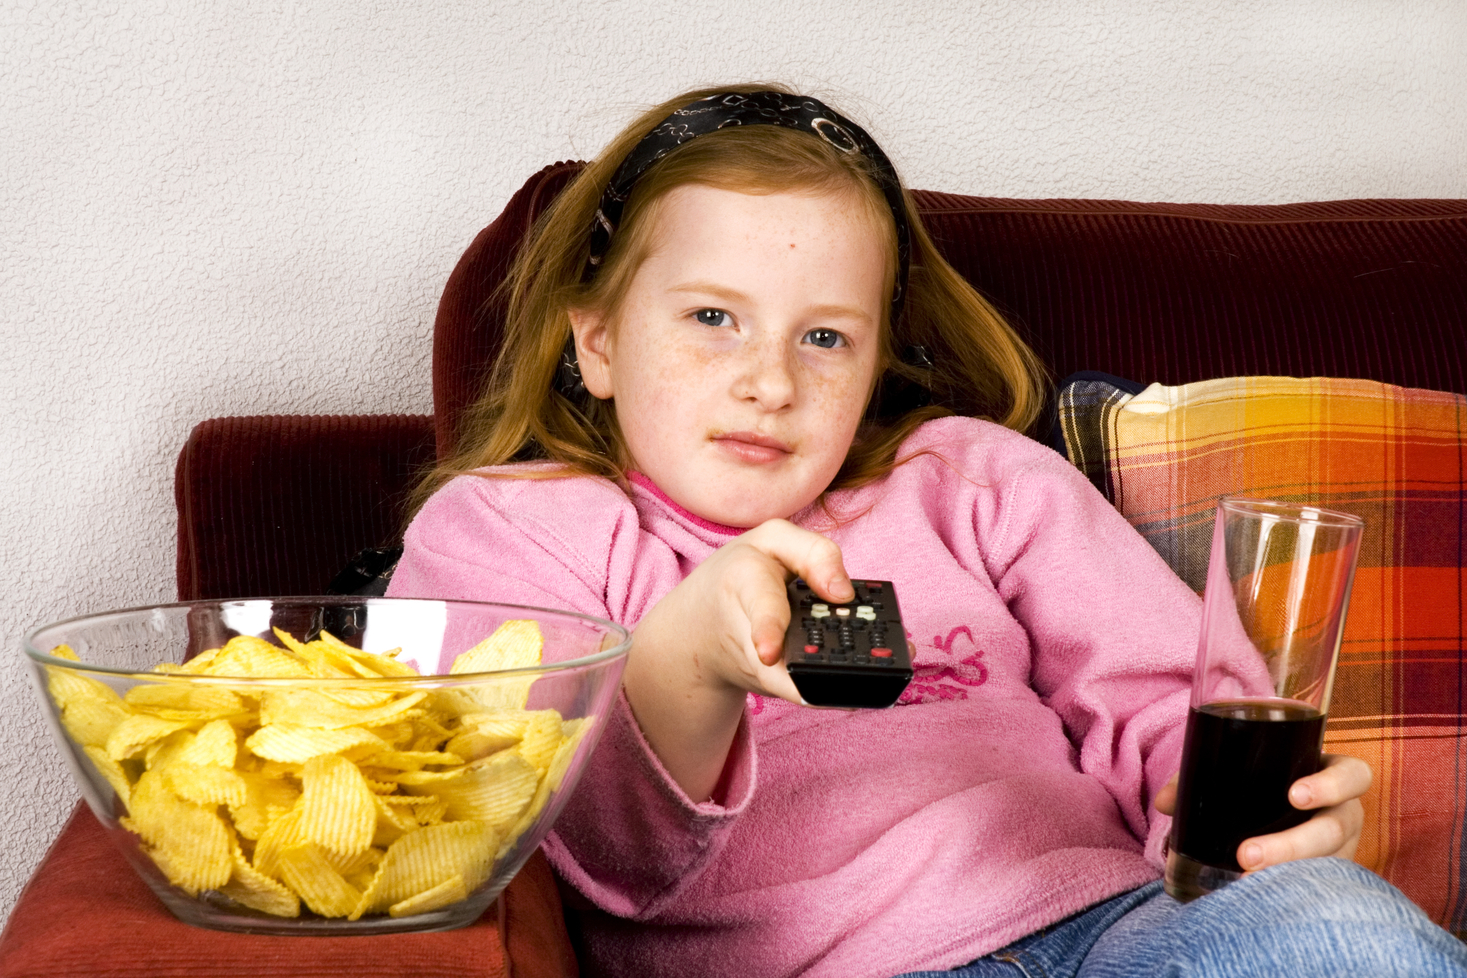 Child eating chips watching television